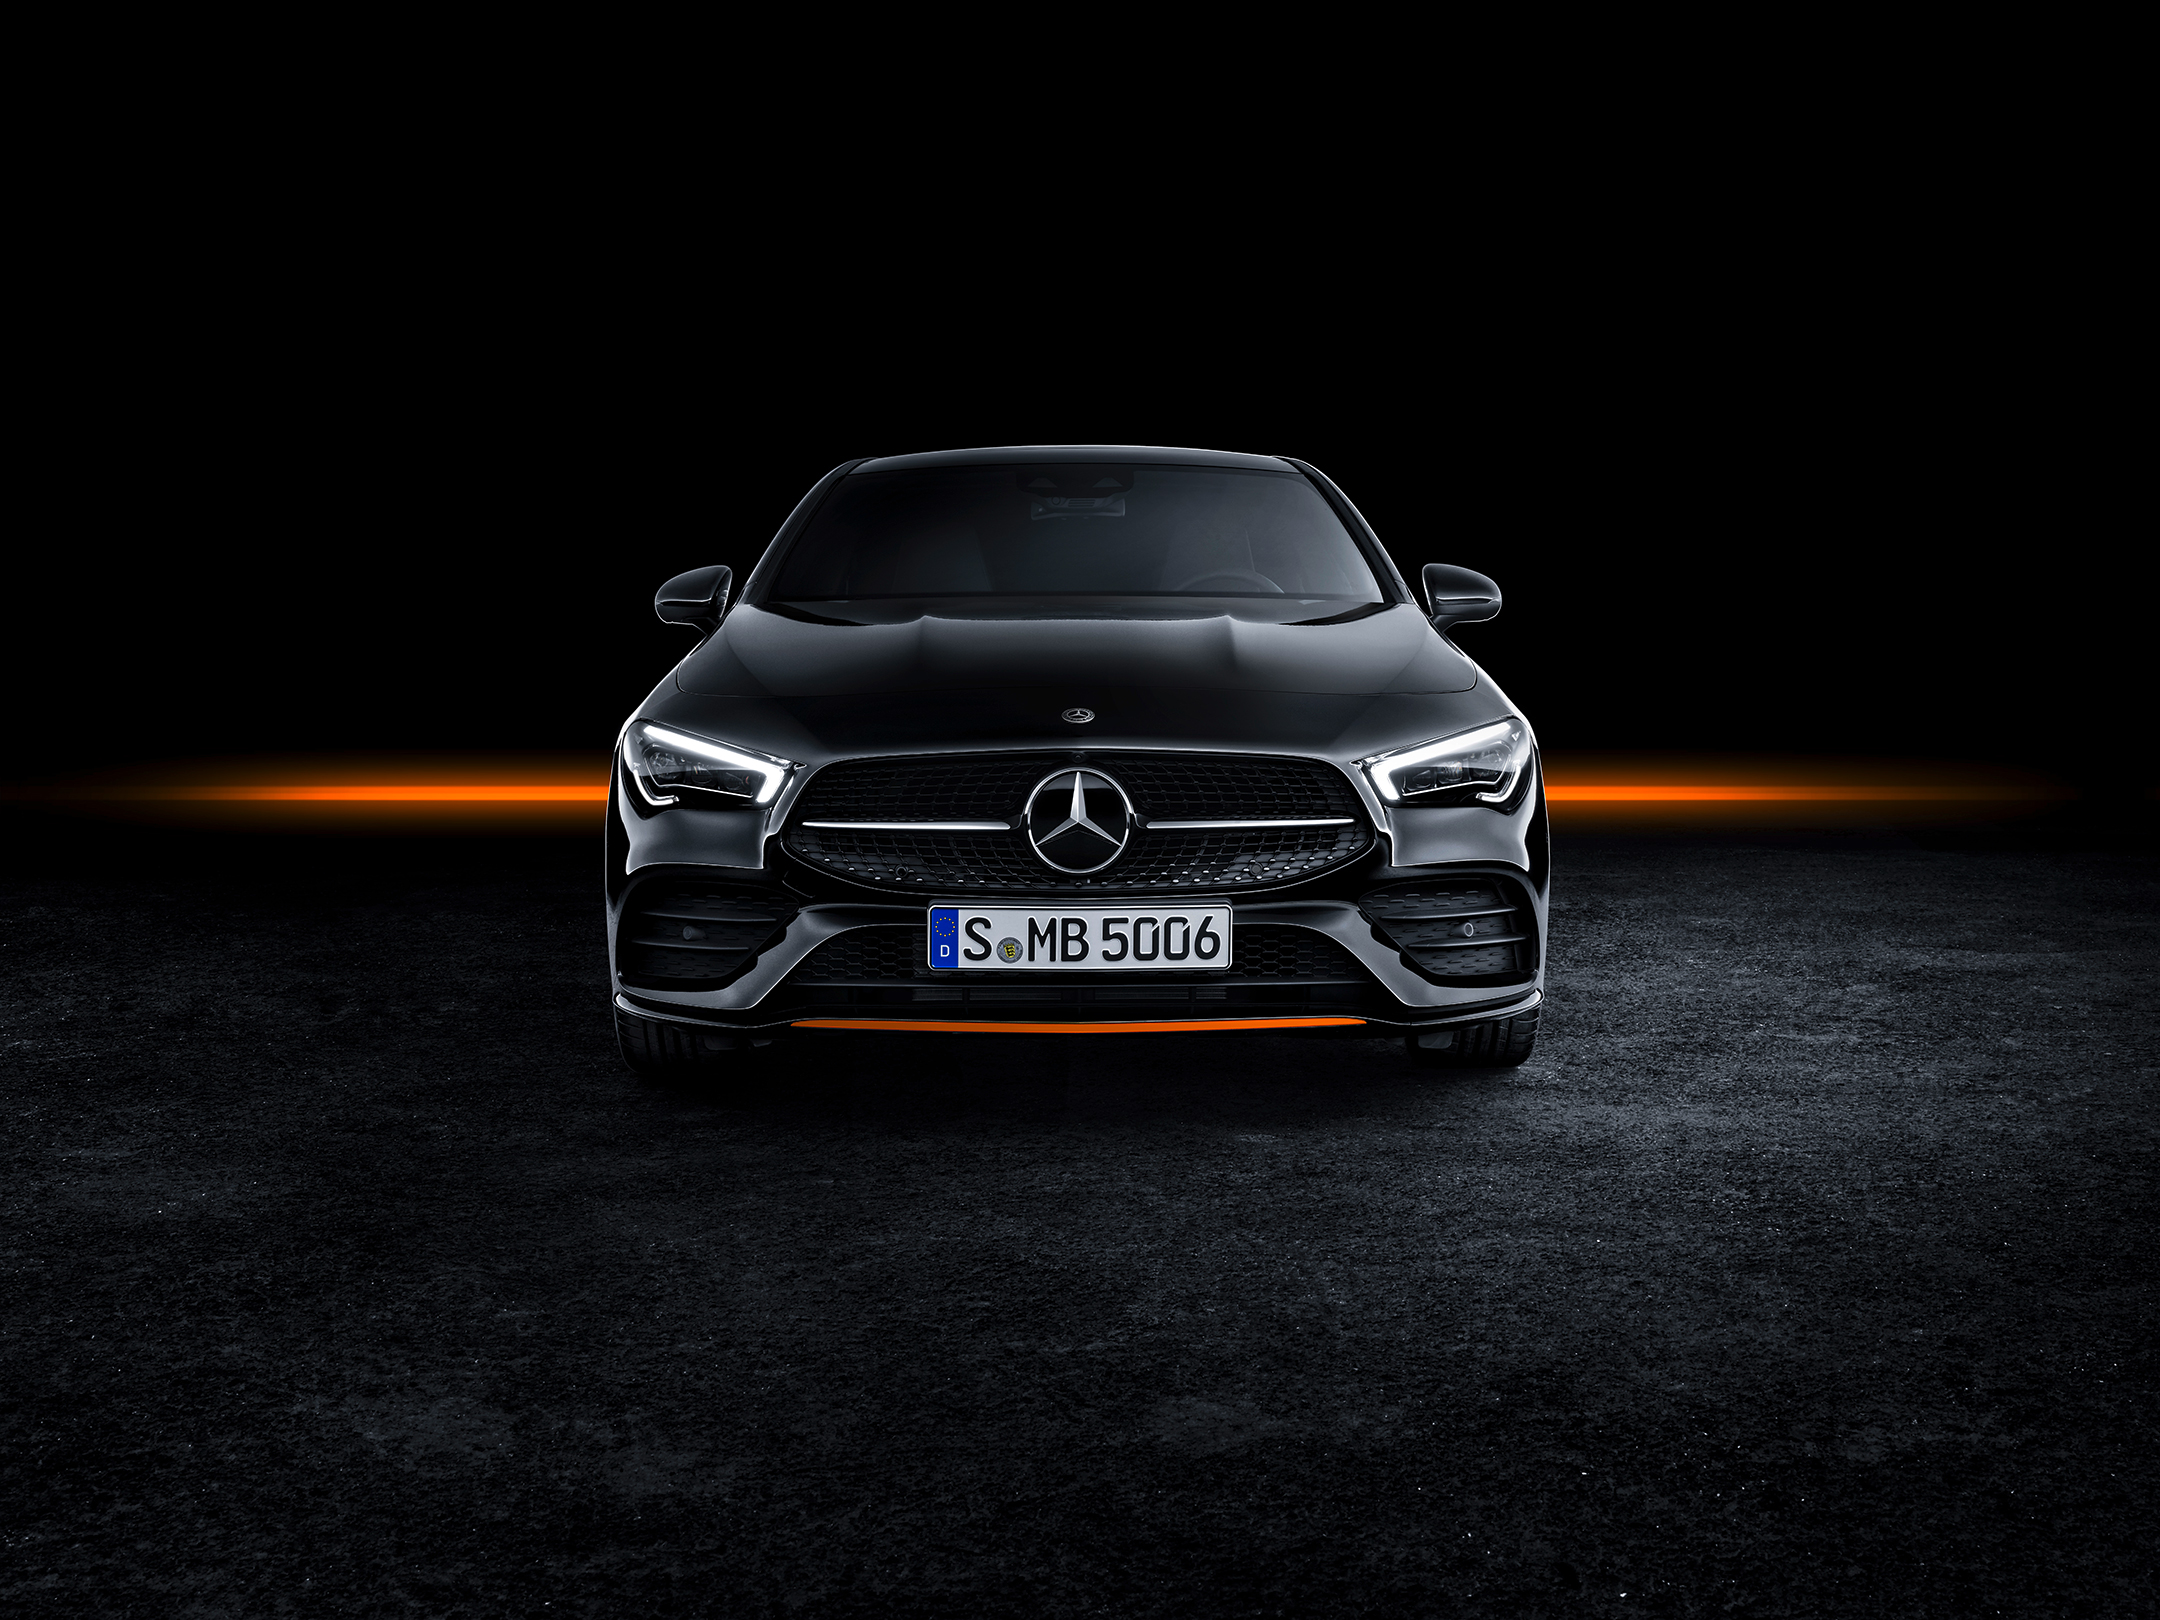 Mercedes-Benz CLA Coupe - 2019 - front-face / face avant - Edition 1